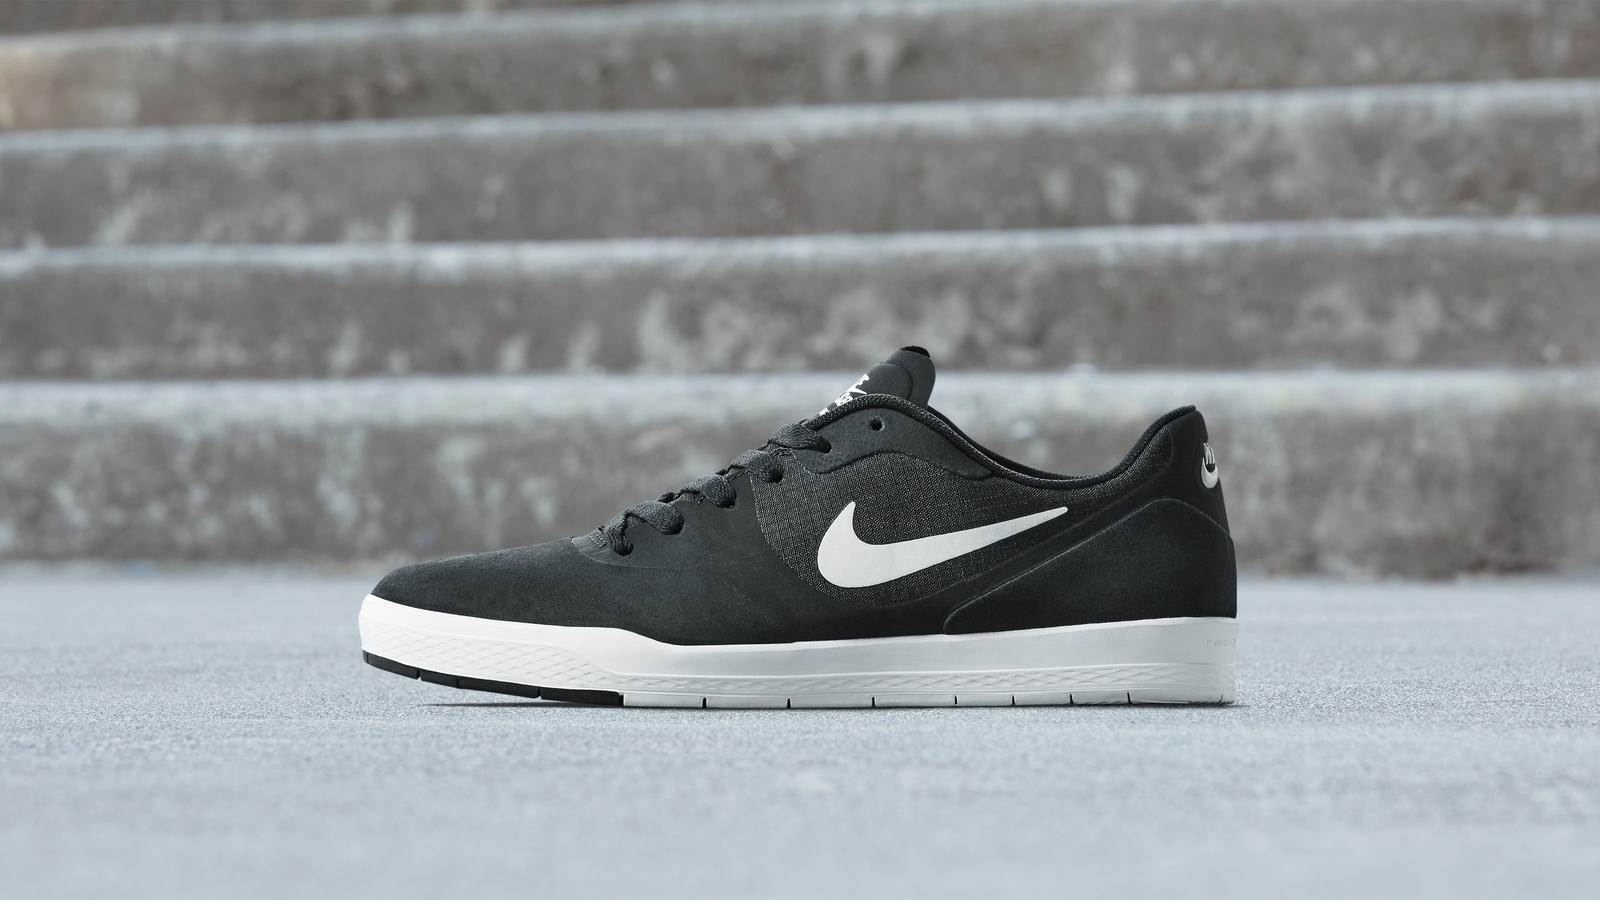 Nike sb paul rodriguez 9 cs 1 hd 1600